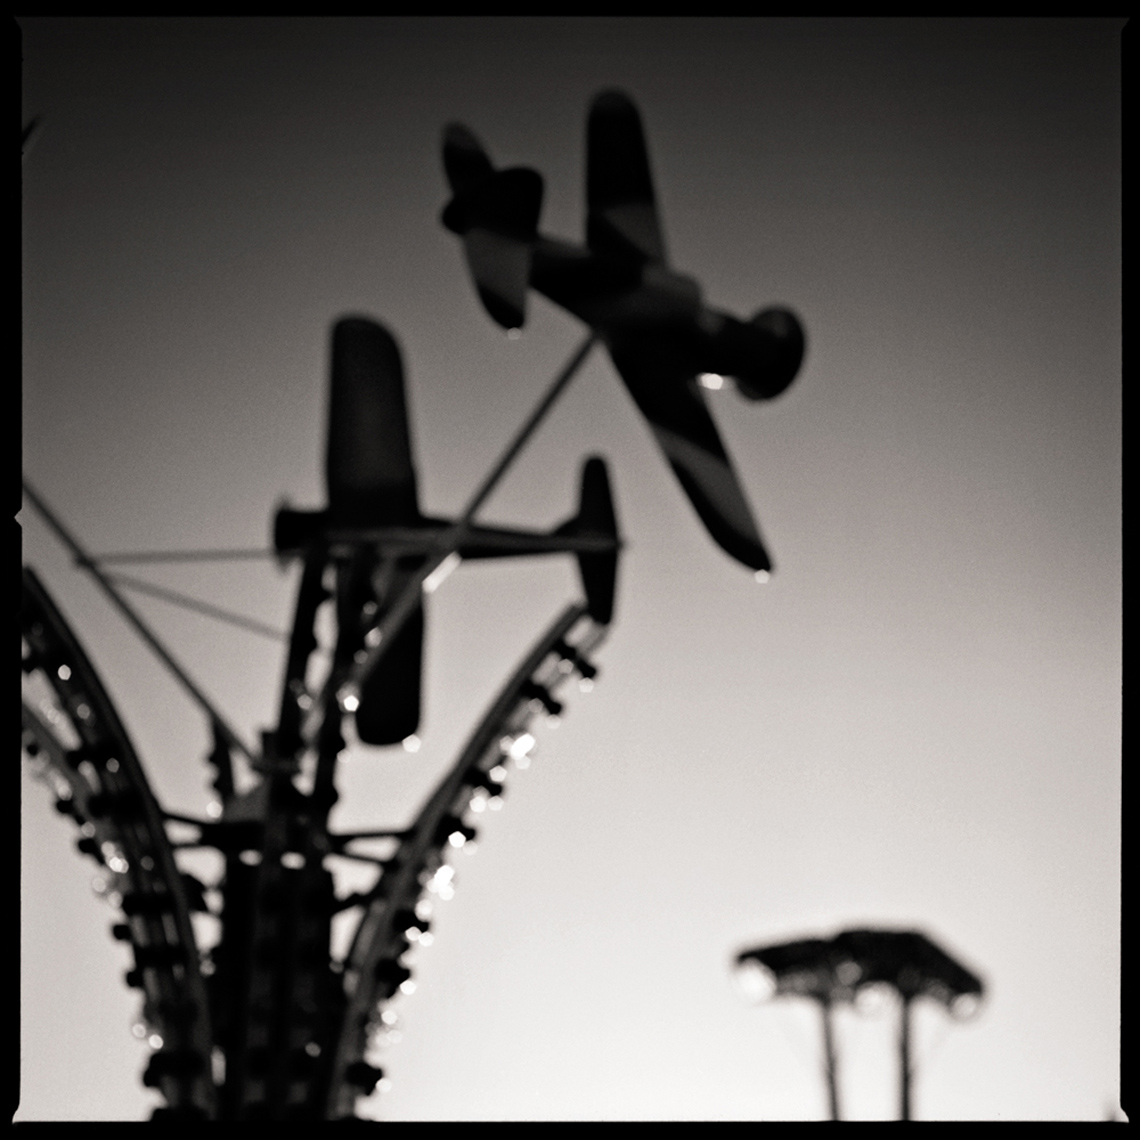 Sean Perry Photographs • Airshow, from the series Fairgrounds